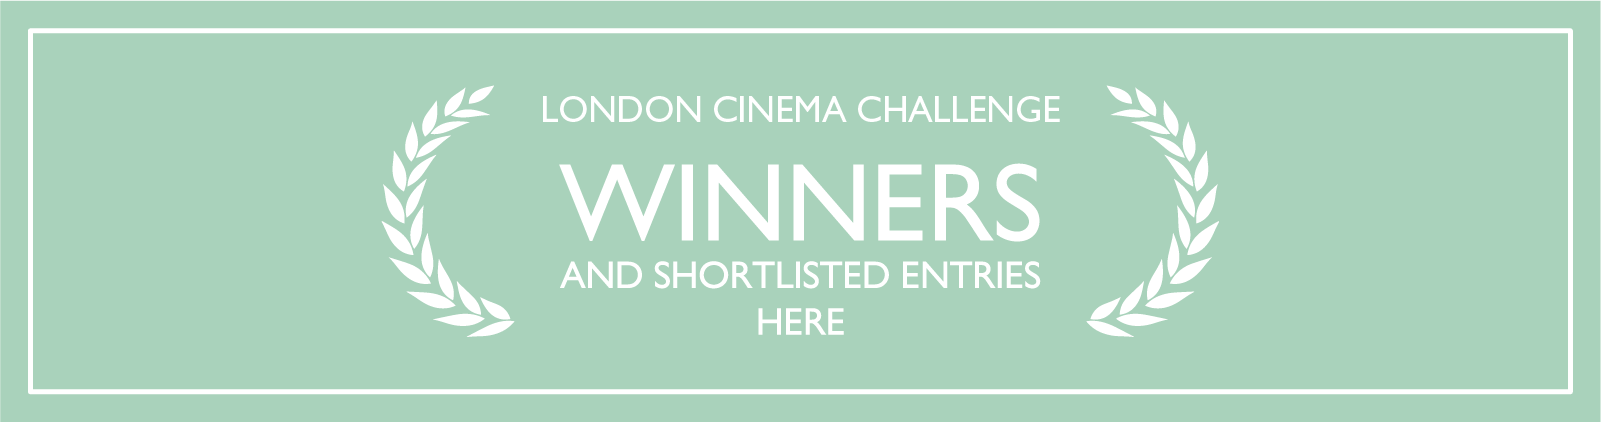 London Cinema Challenge